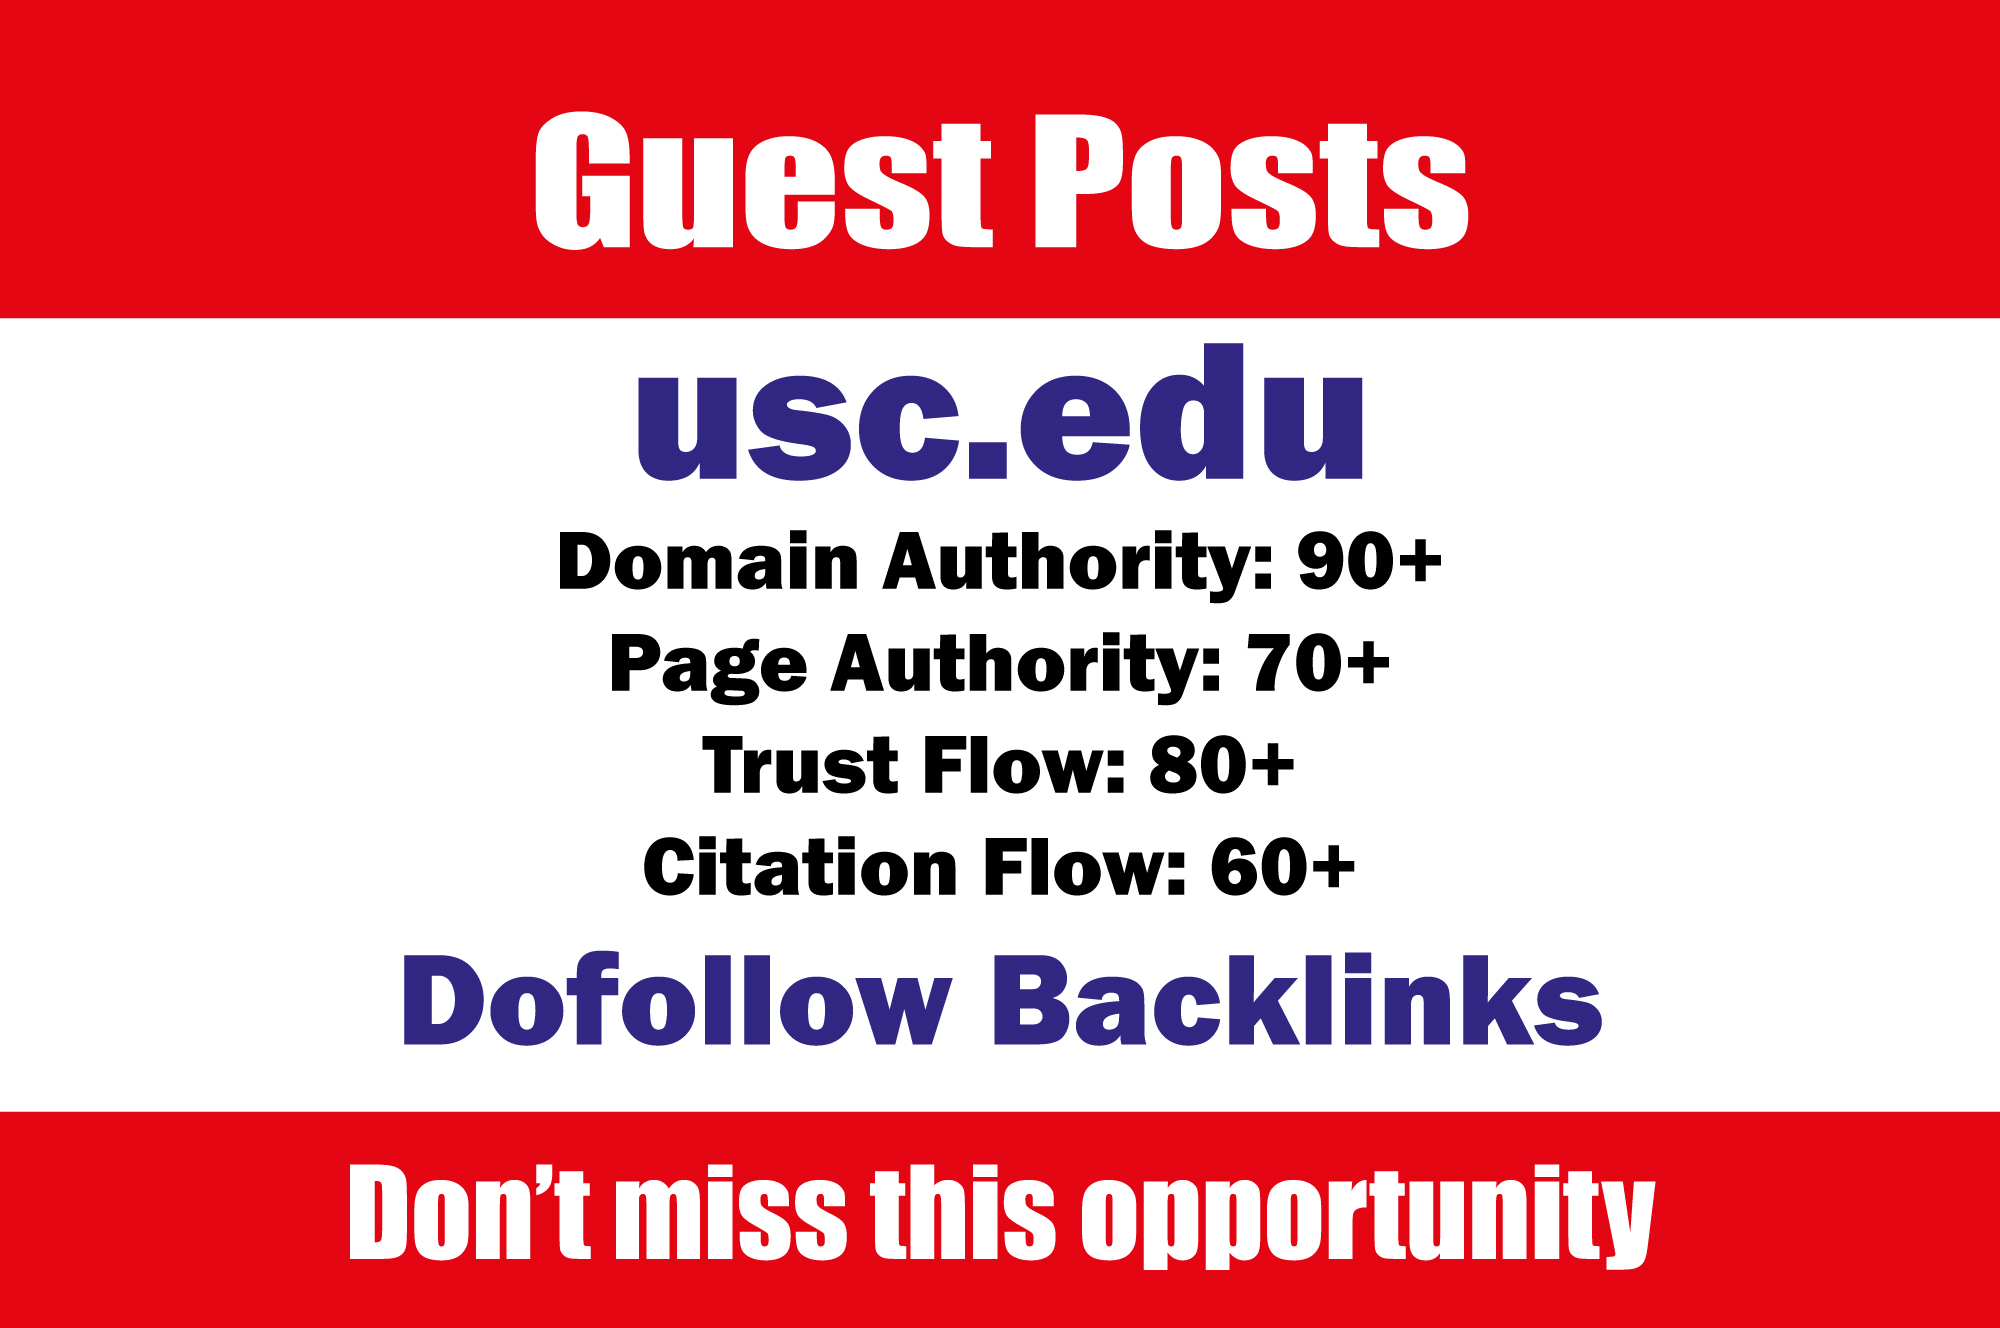 Guest Post On University of Southern California - usc.edu DA91 with do f0llow